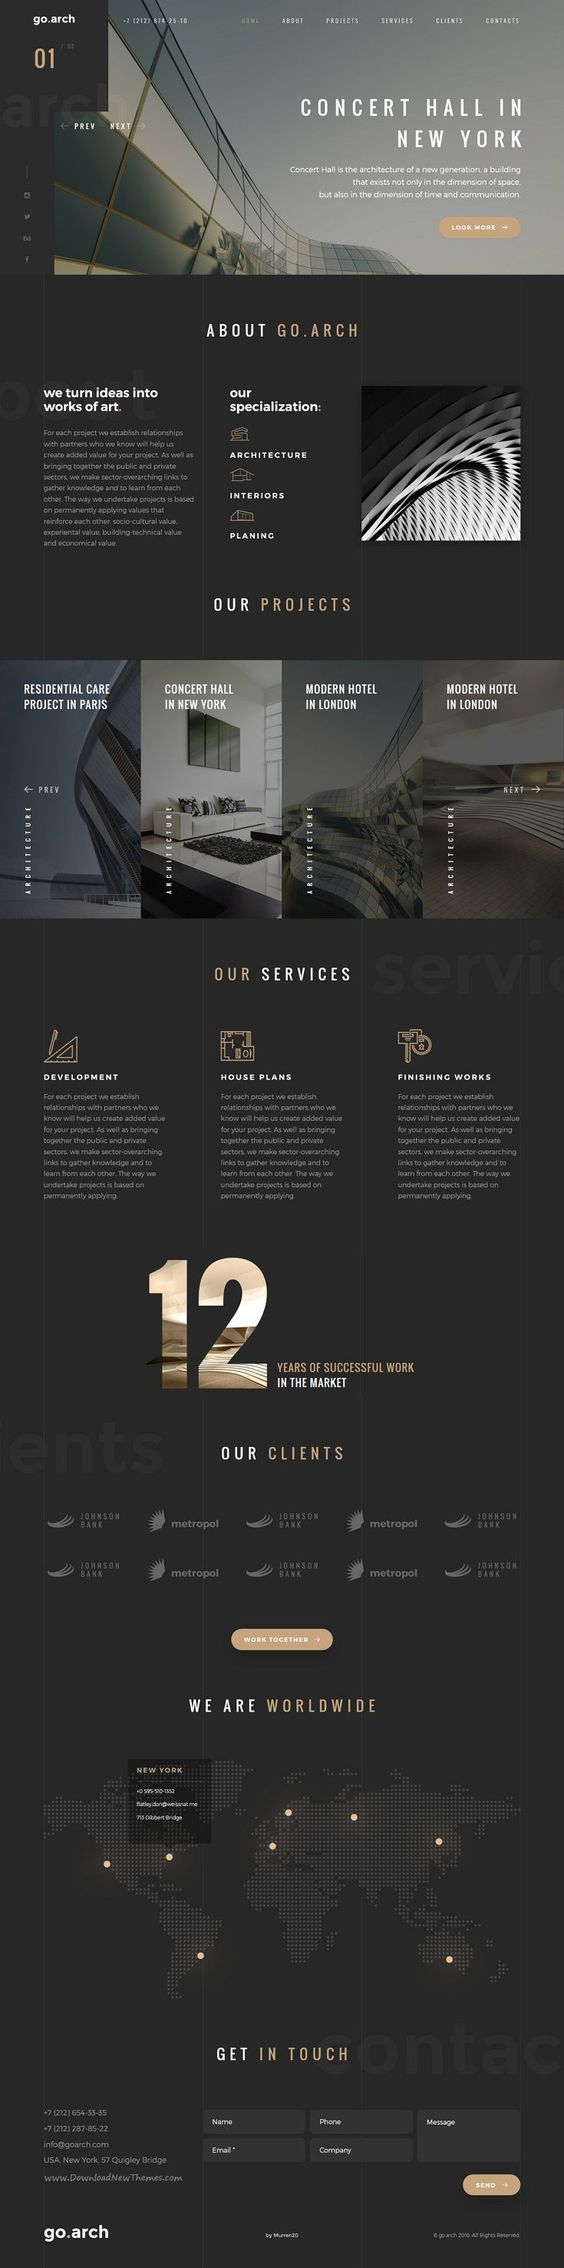 Gold And Grey Colour Scheme Classic Visual Appeal On This Website Website Design Inspiration Web Design Website Design Layout